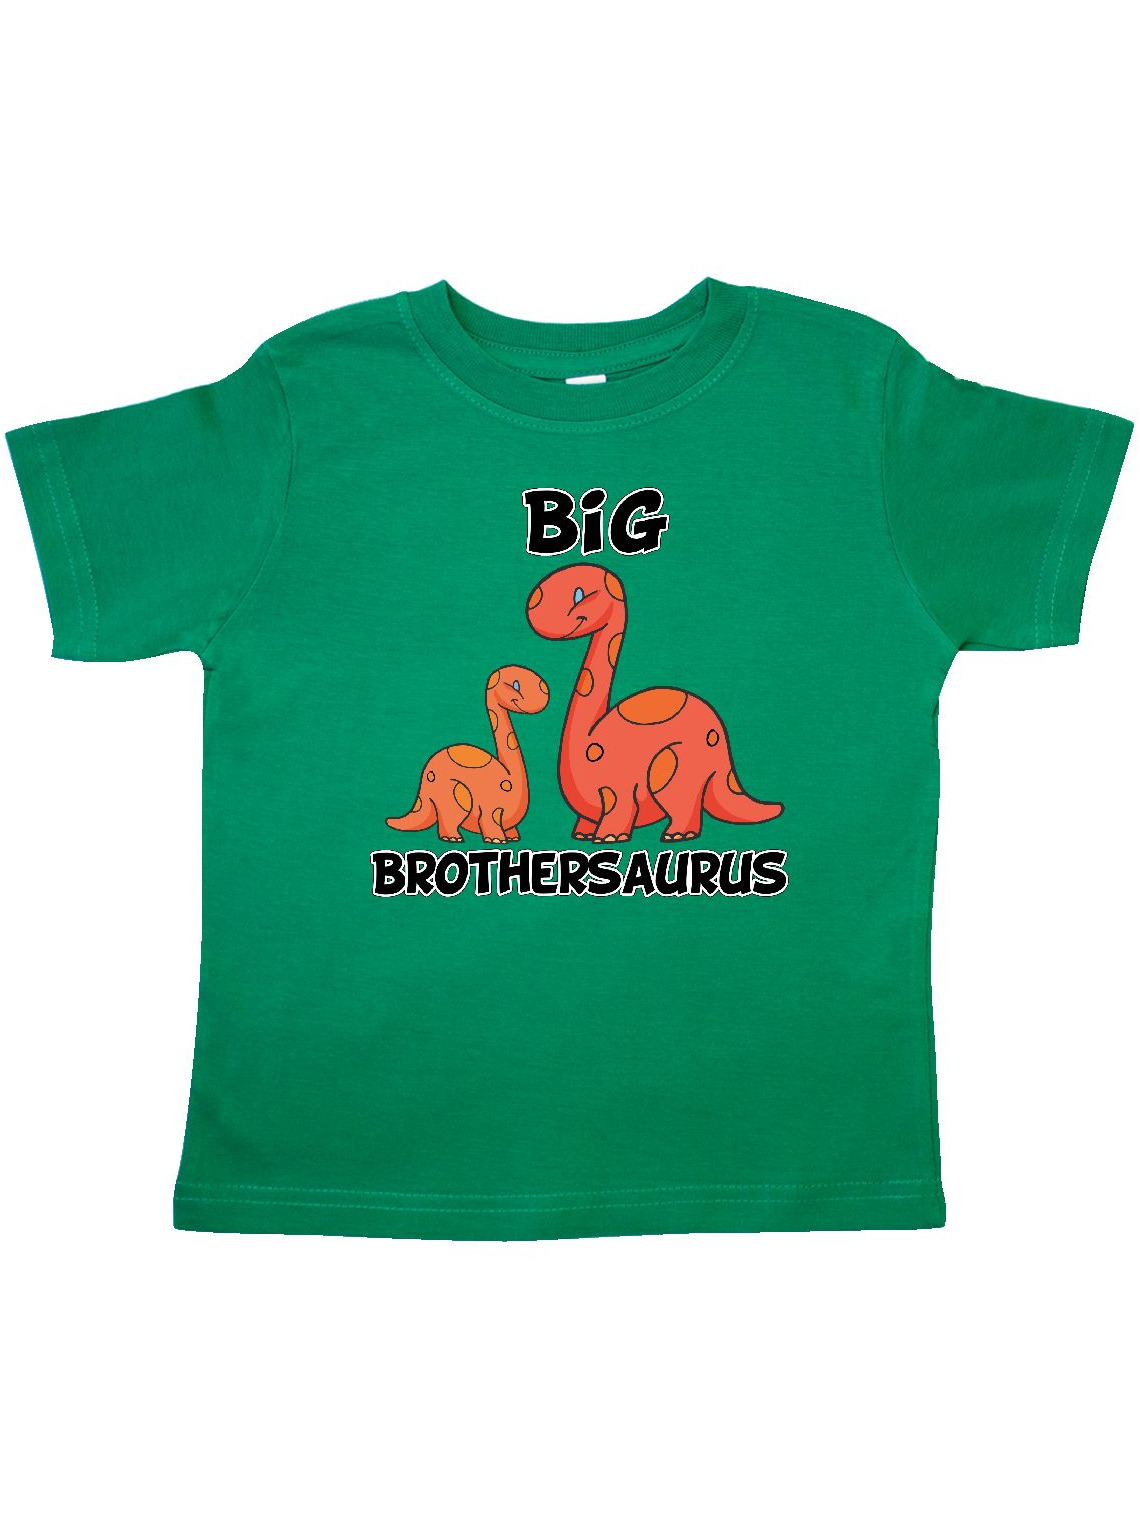 Big Brothersaurus Toddler T-Shirt